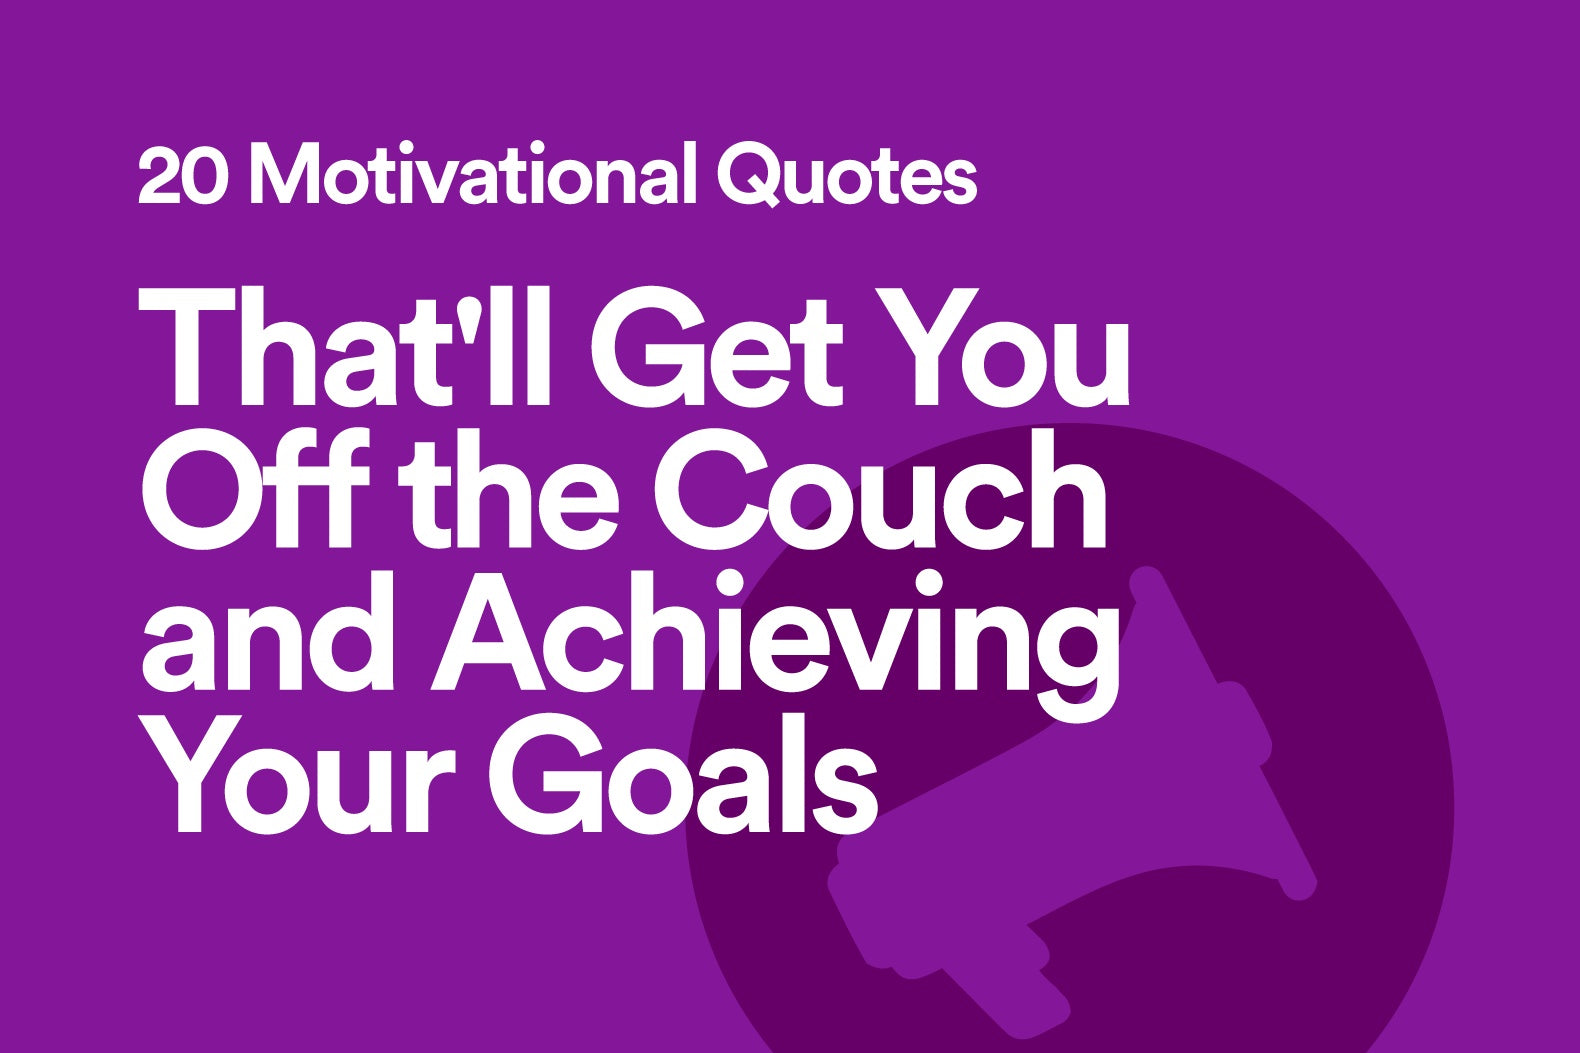 20 Motivational Quotes That'll Get You Off the Couch and Achieving Your Goals